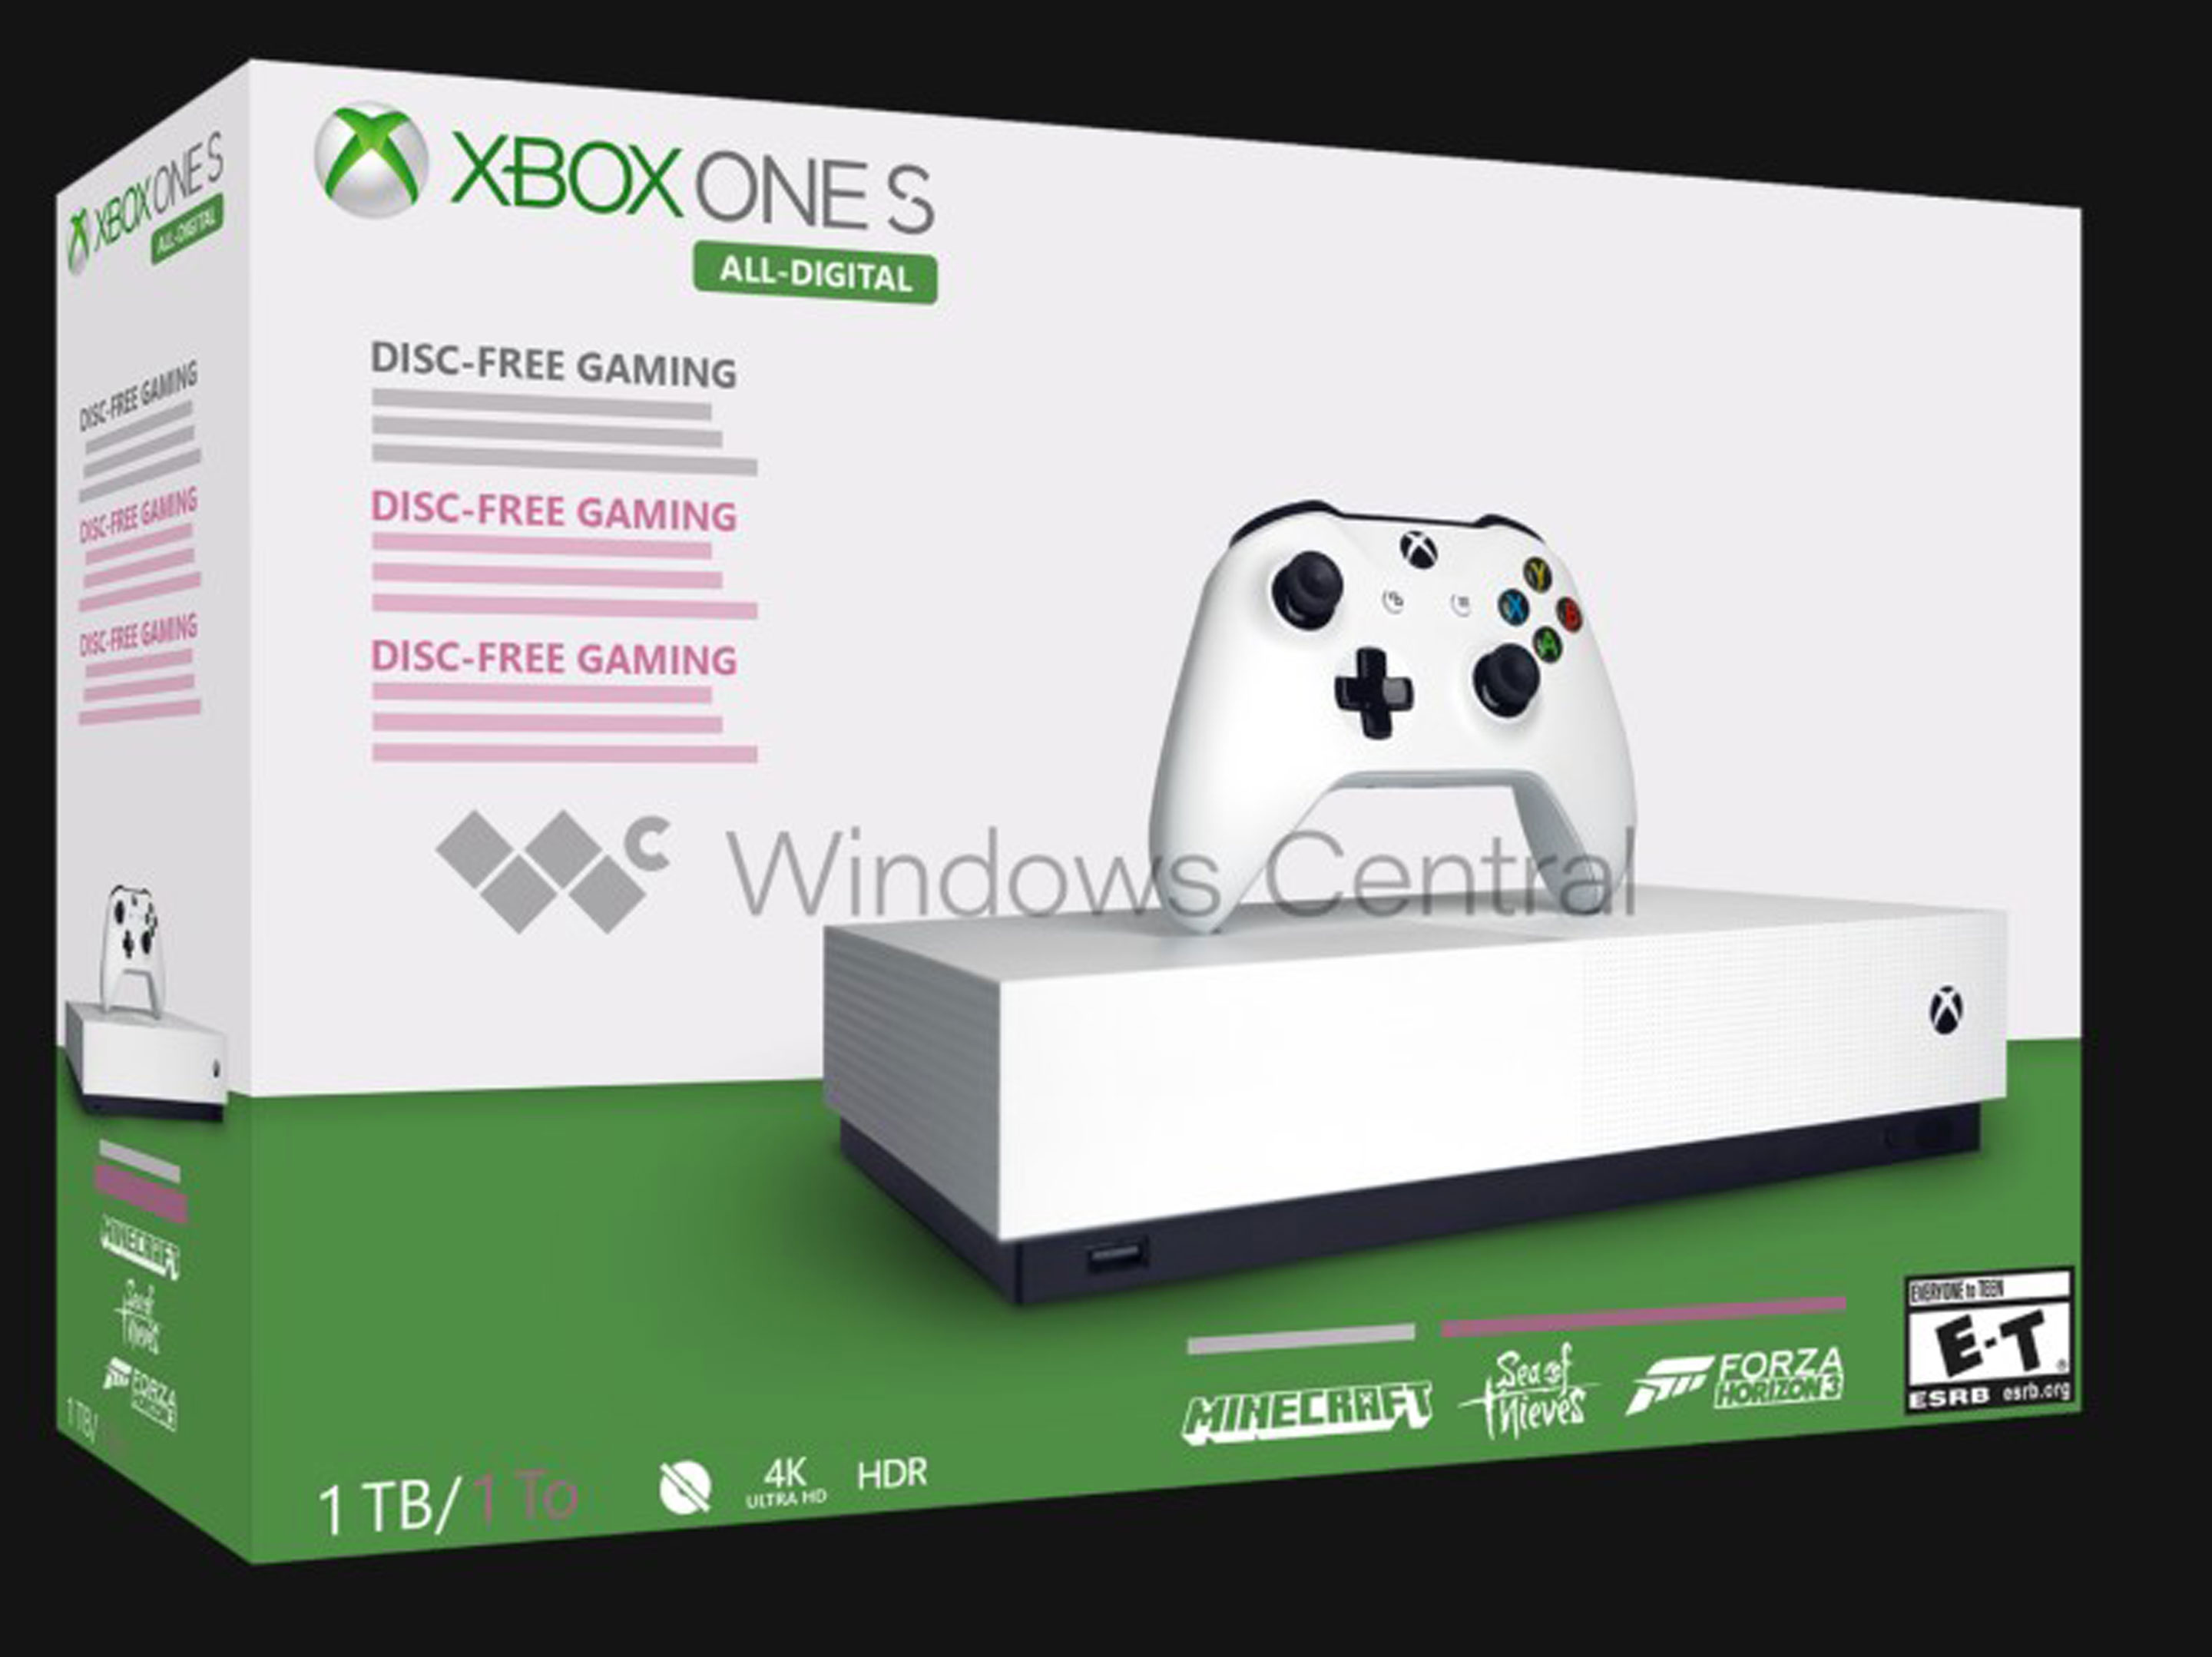 A photoshop mockup of the Xbox One S All-Digital edition